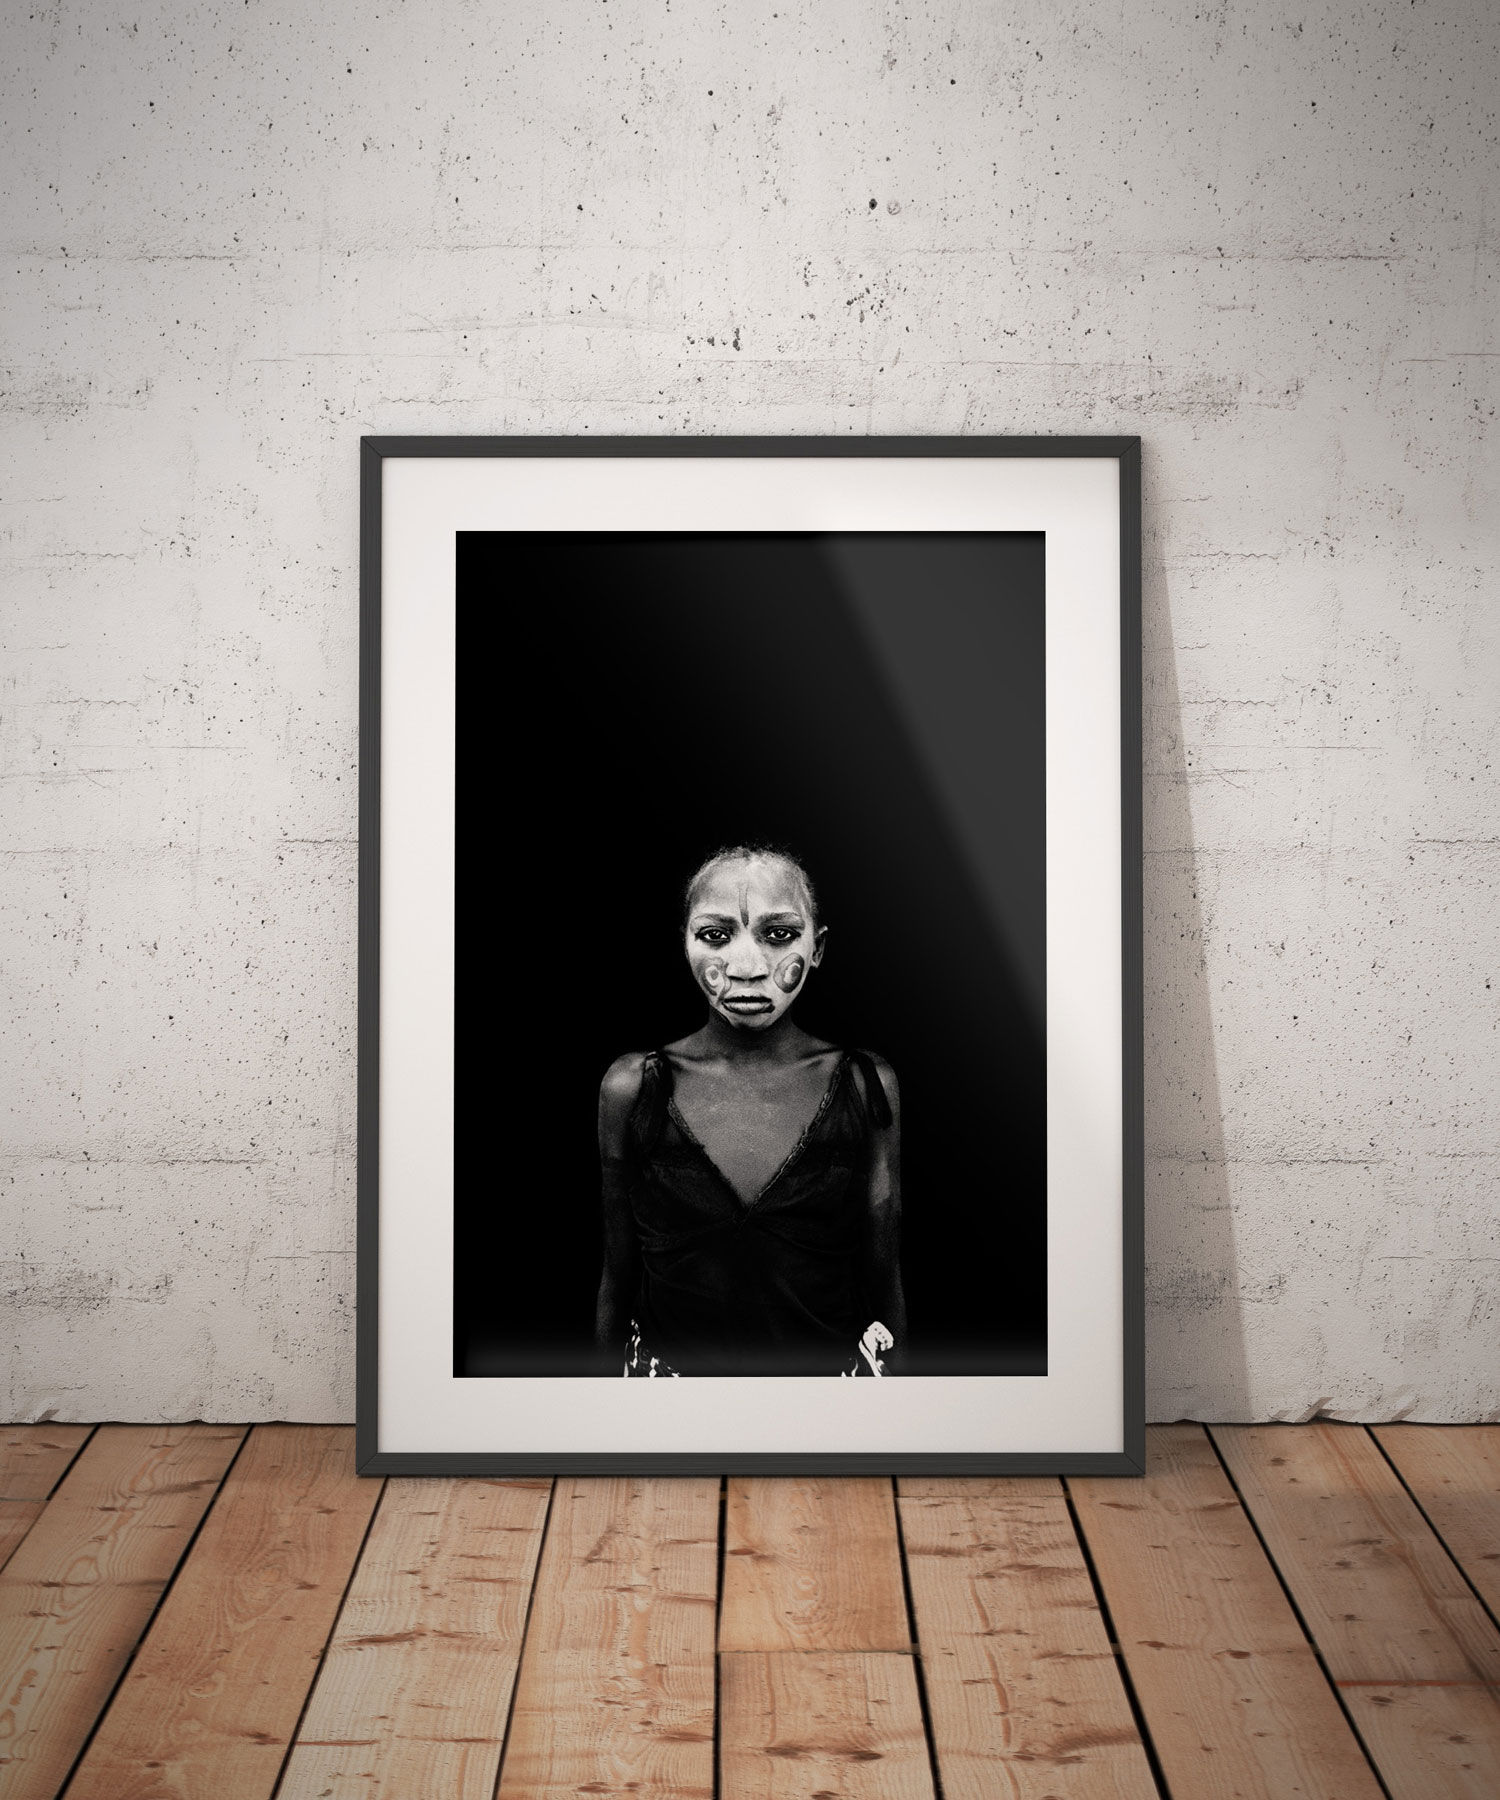 Makasutu - Jason Florio. PAINTED FACE (COMING OF AGE), The Gambia, West Africa. Black and white portrait print